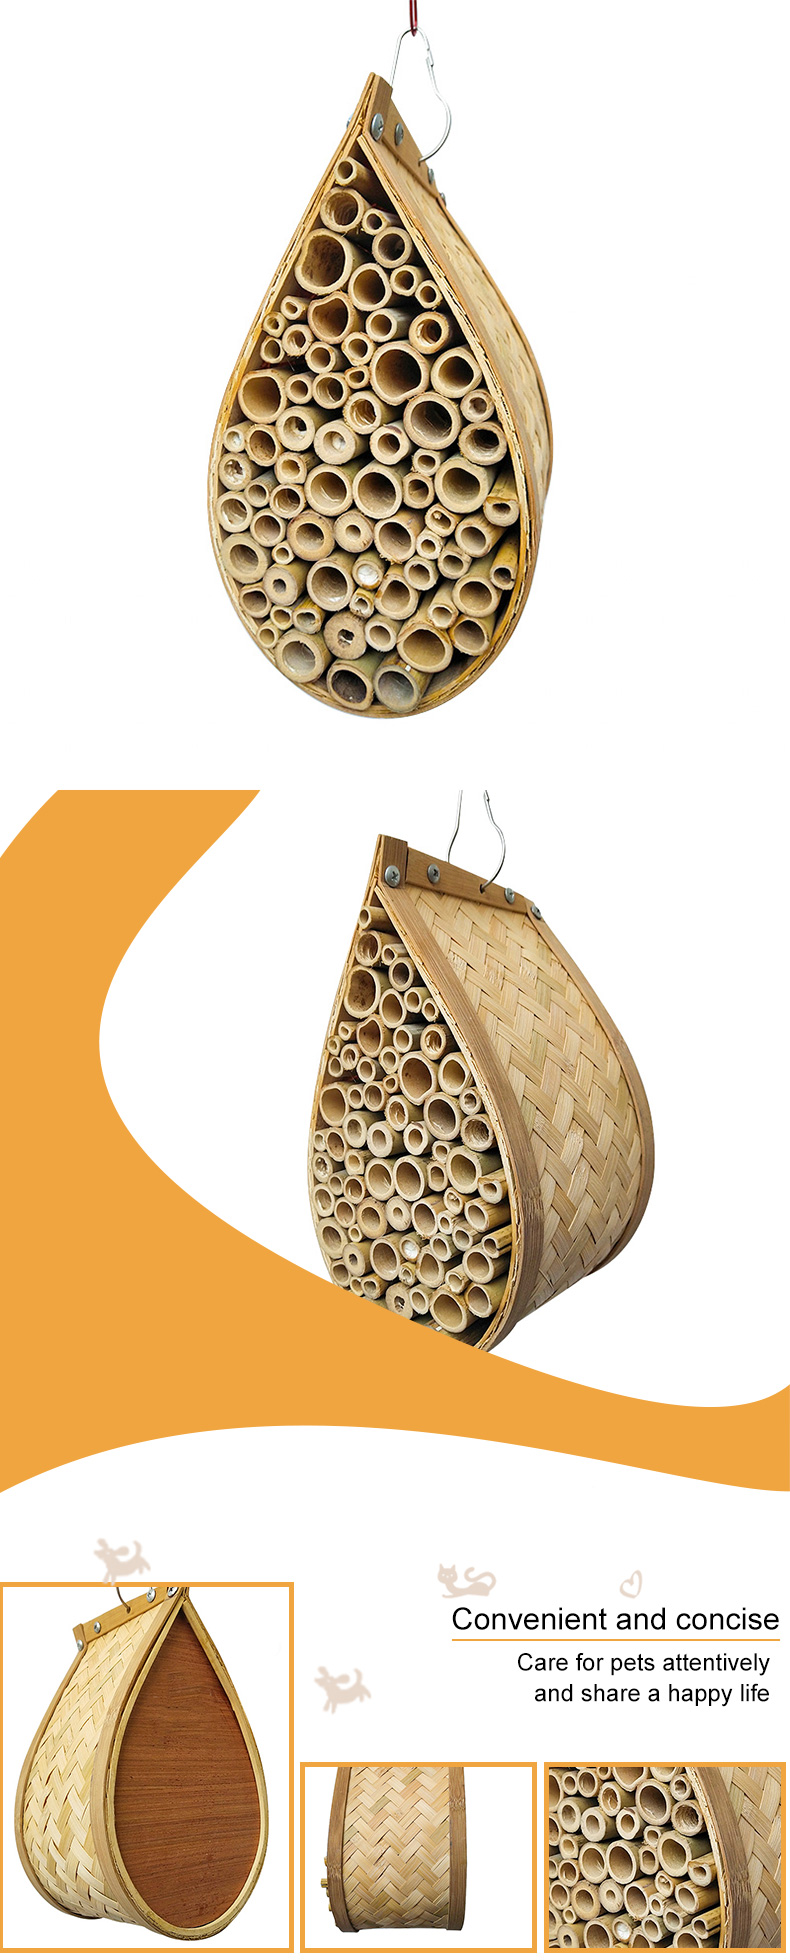 bamboo insect nests pet supplies